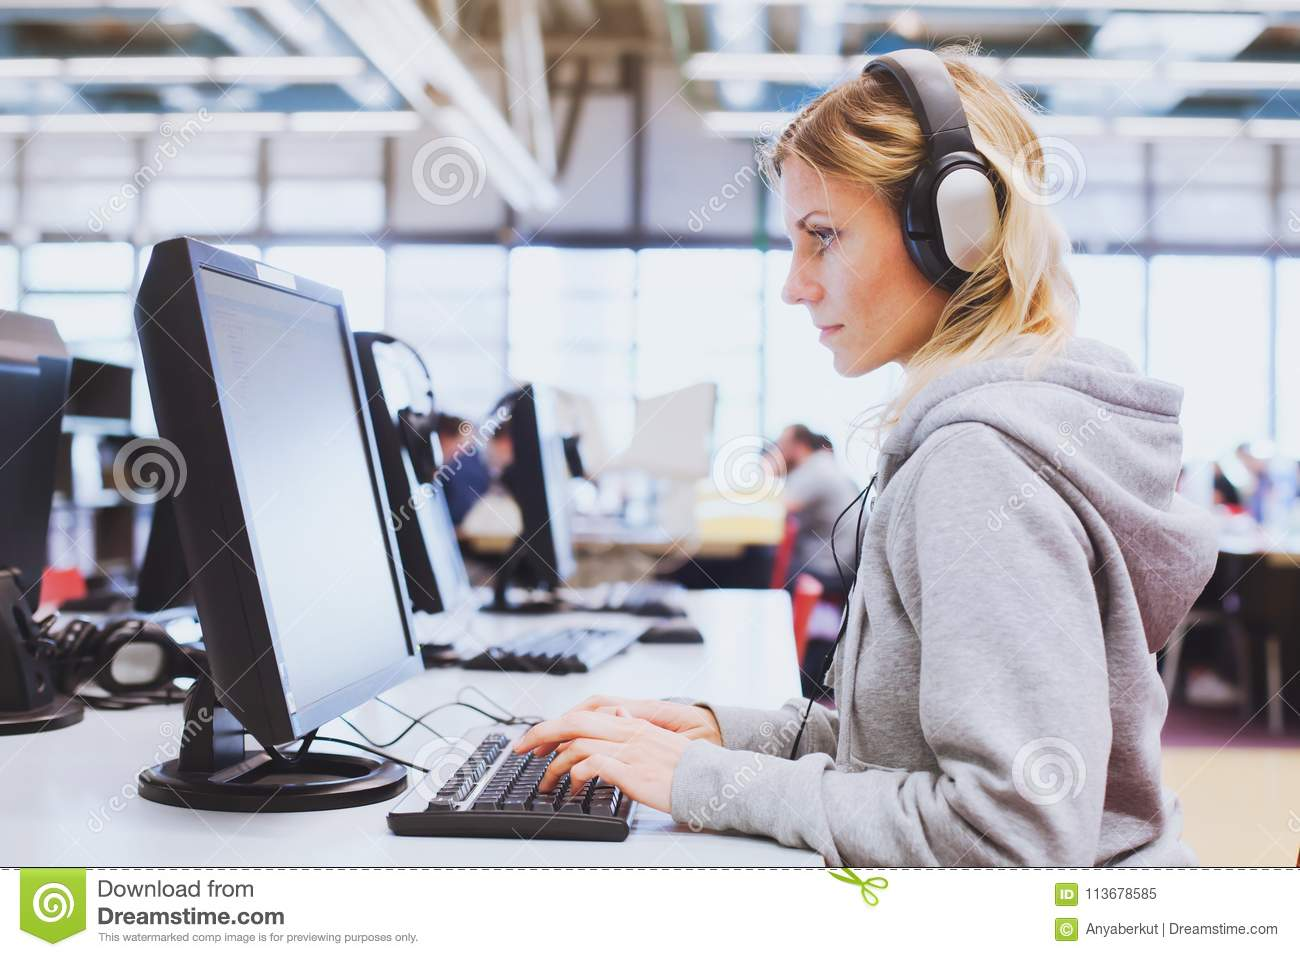 Adult education, student in headphones working on computer in the library